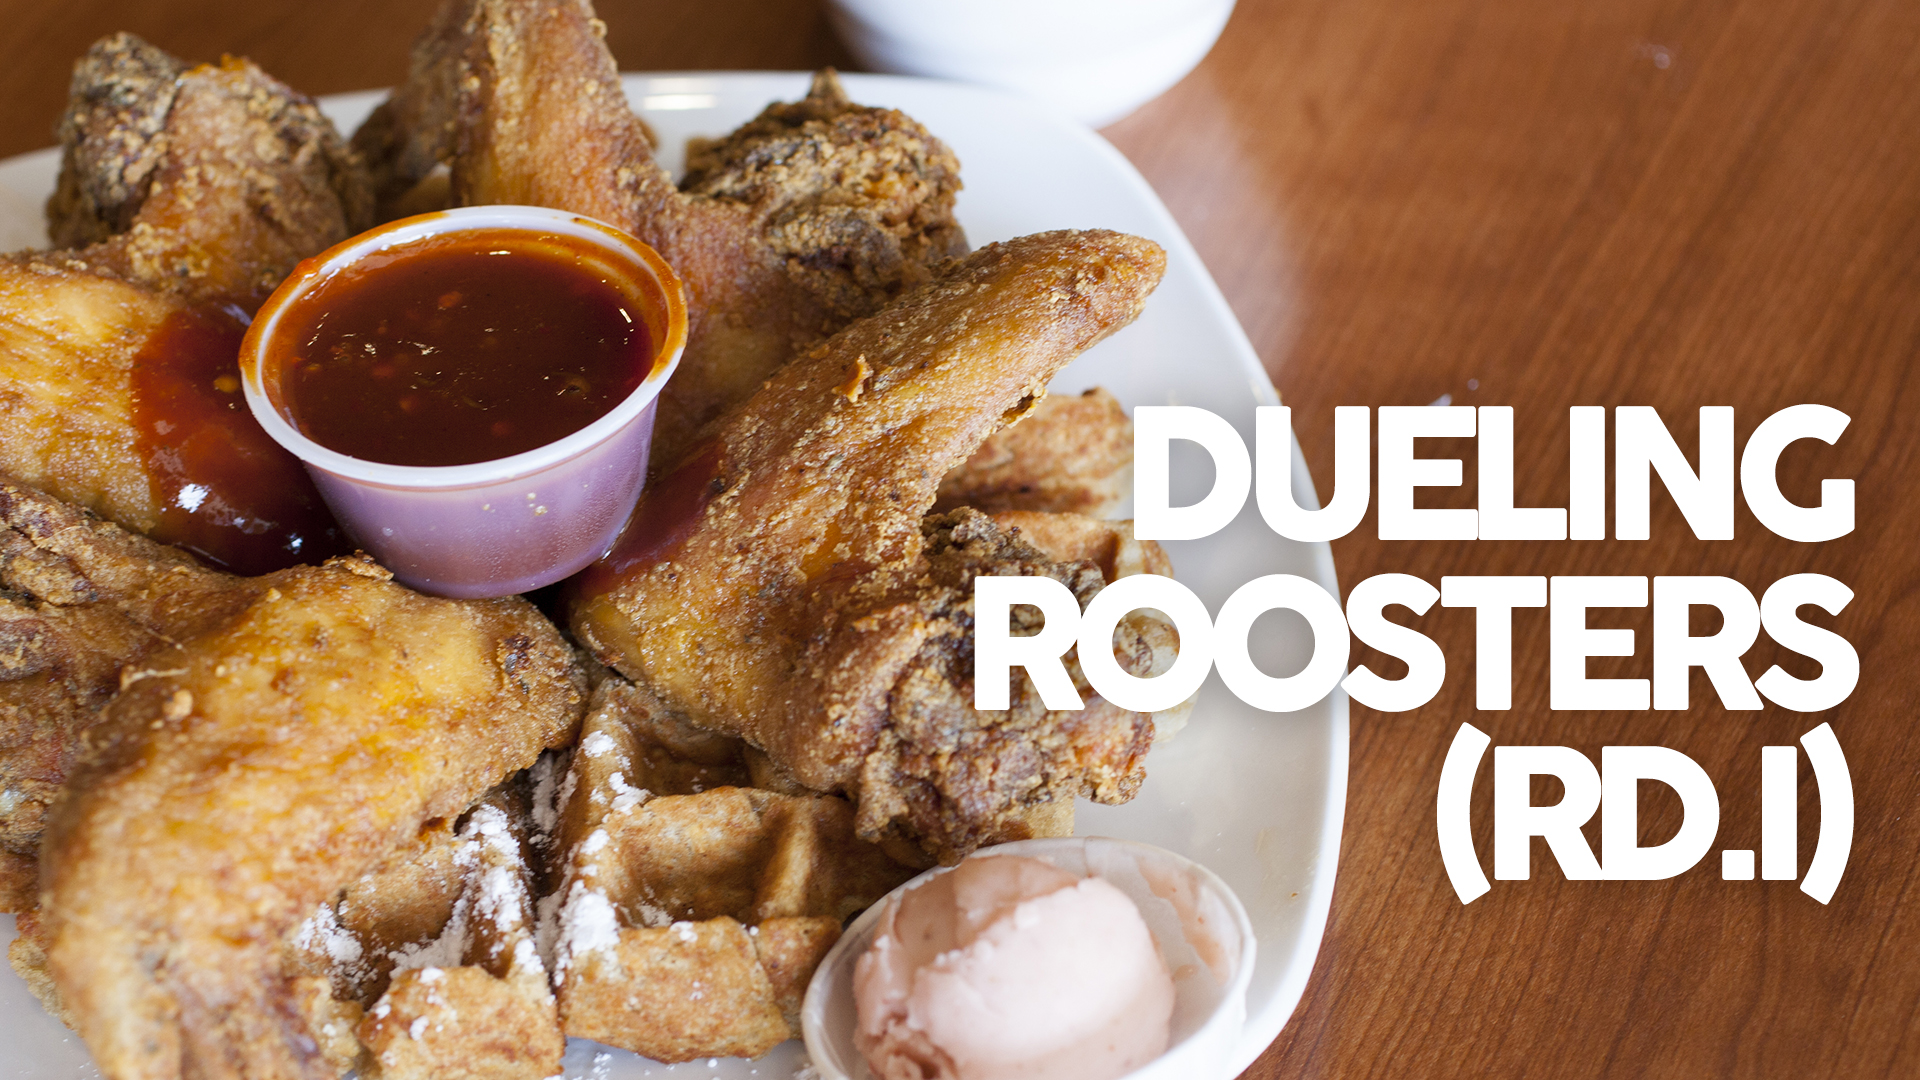 Image of Dame's Chicken and Waffles